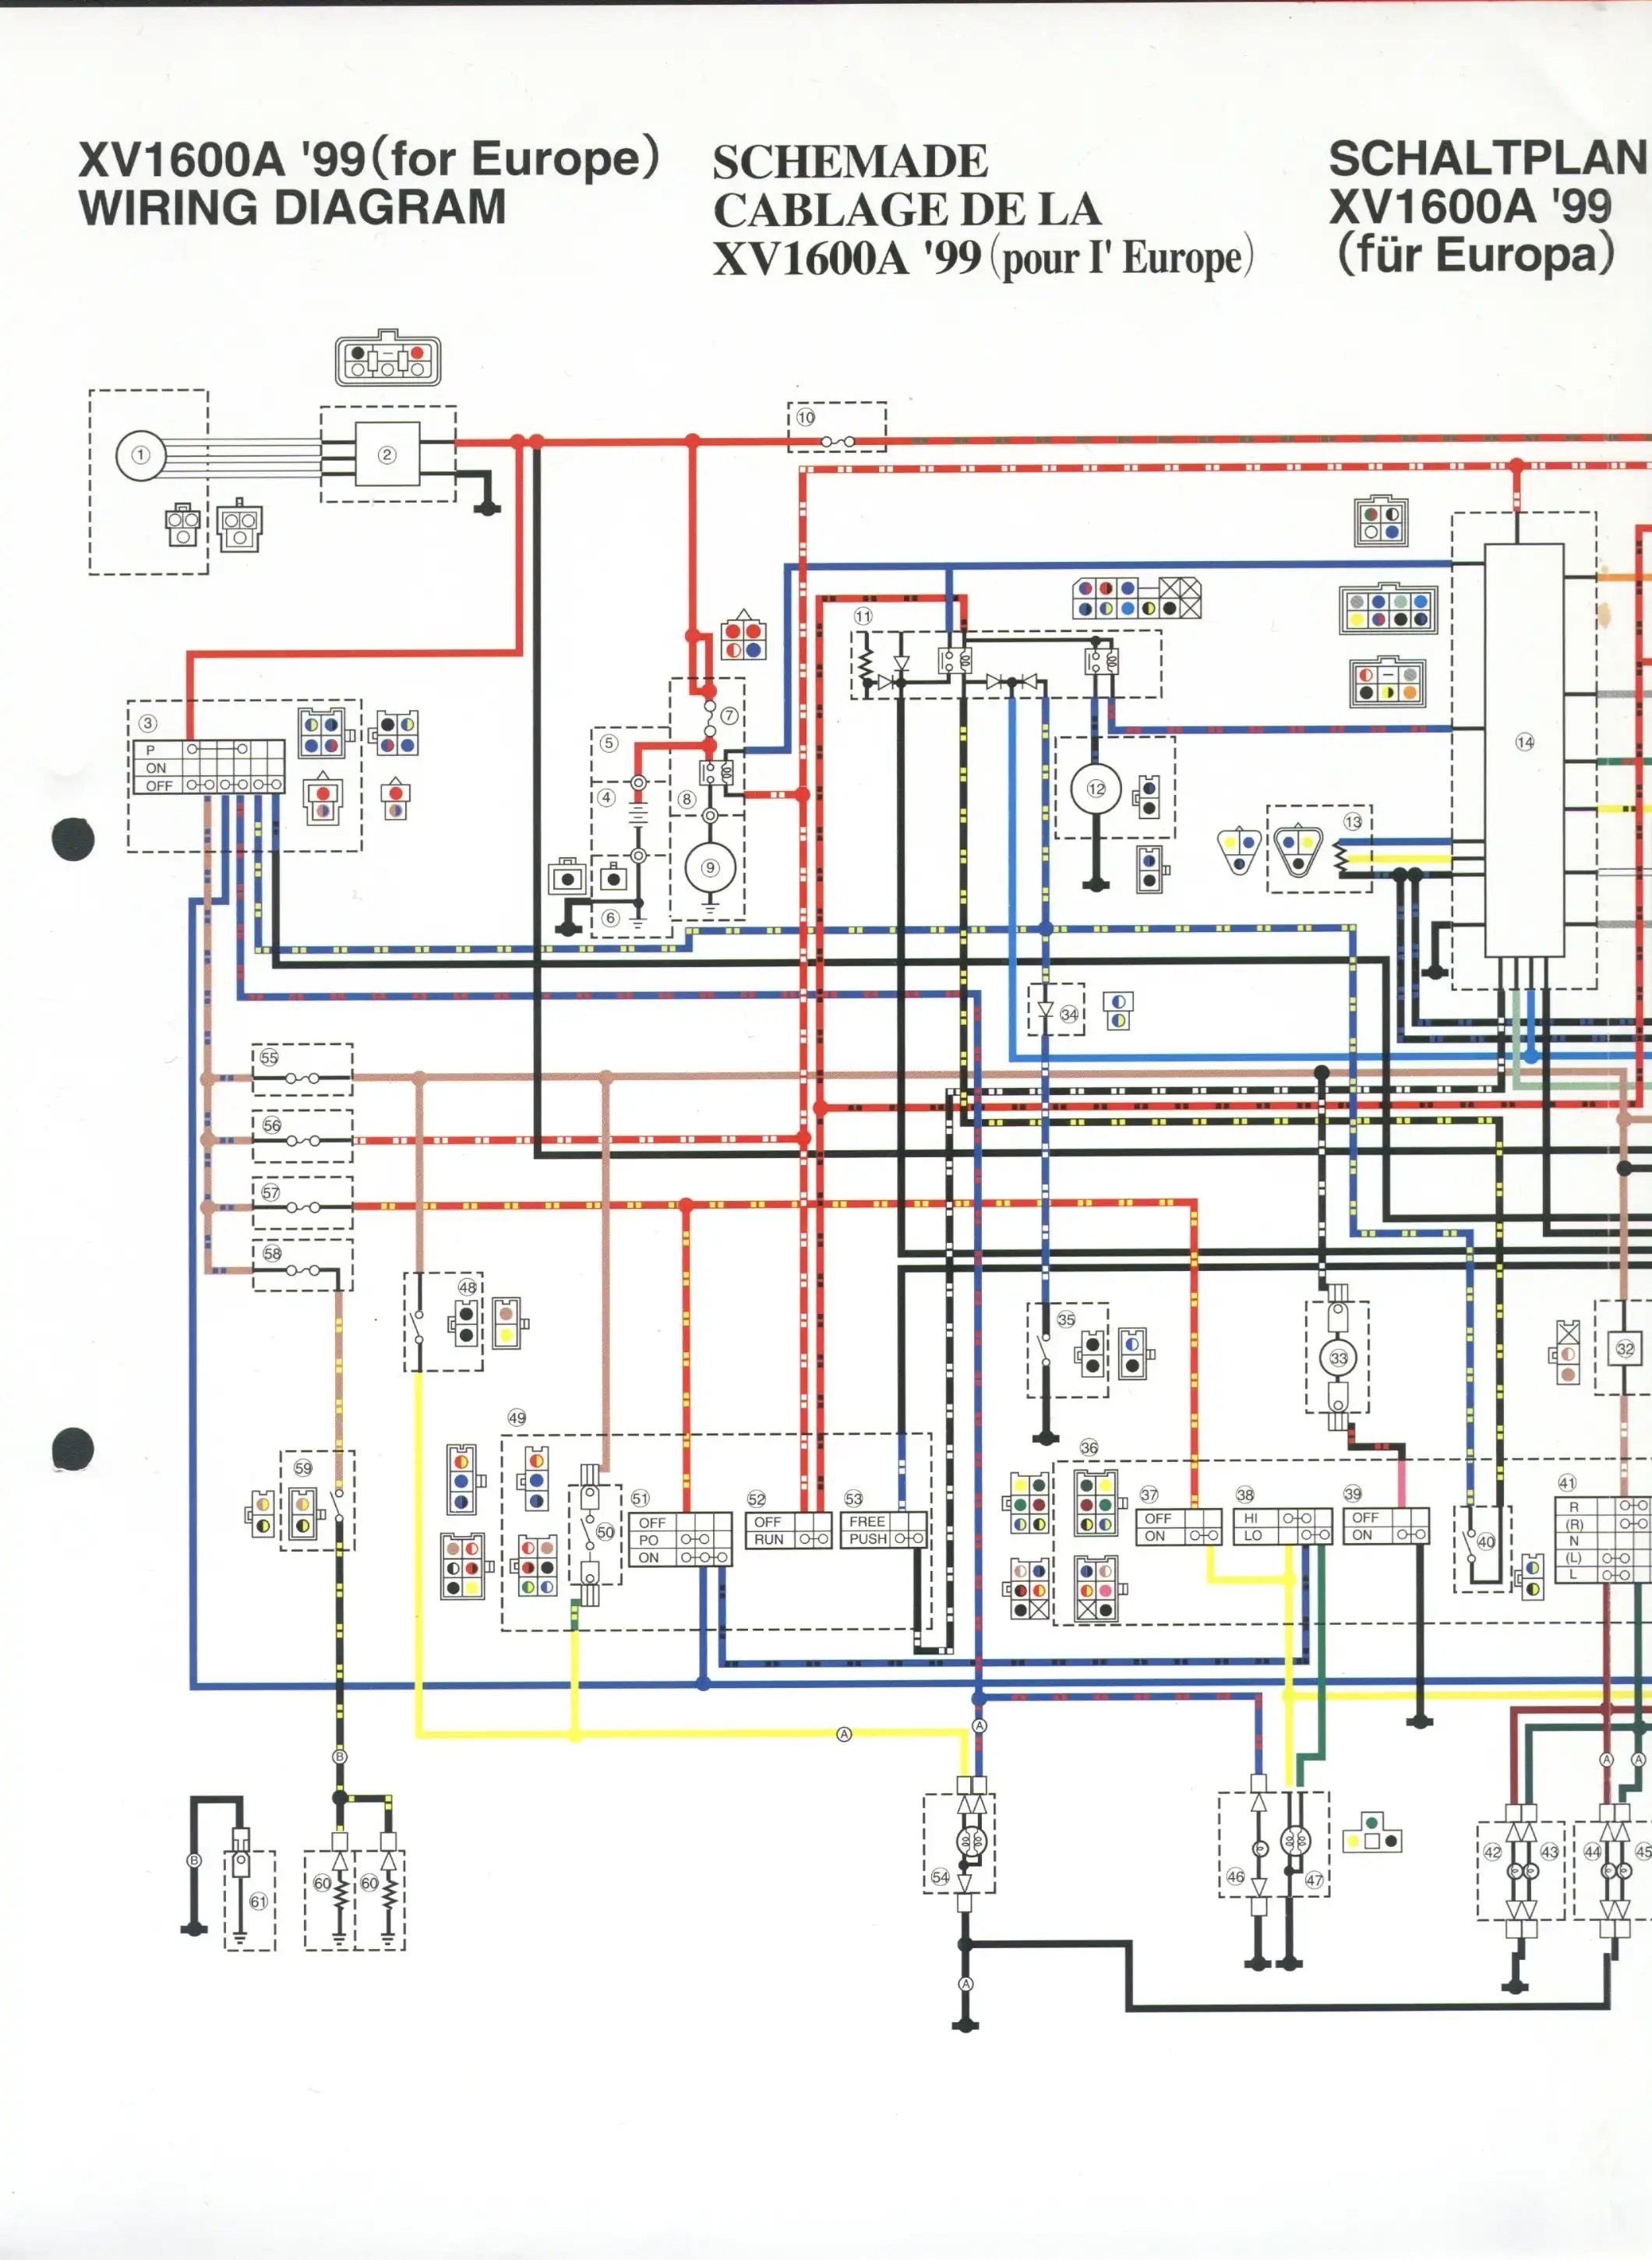 wiring diagram yamaha r3 with Tech Tips on 1996 besides Yzf R3 Headlight Projector Wiring Diagrams likewise 7C 7C  skuteryostrow pl 7Cstrona 7Cimages 7Cdownload 7Cinstalacje elektr Mz kolor 7Ces175 250 1 also Yamaha Yzf R3 Demo Day besides Tech Tips.